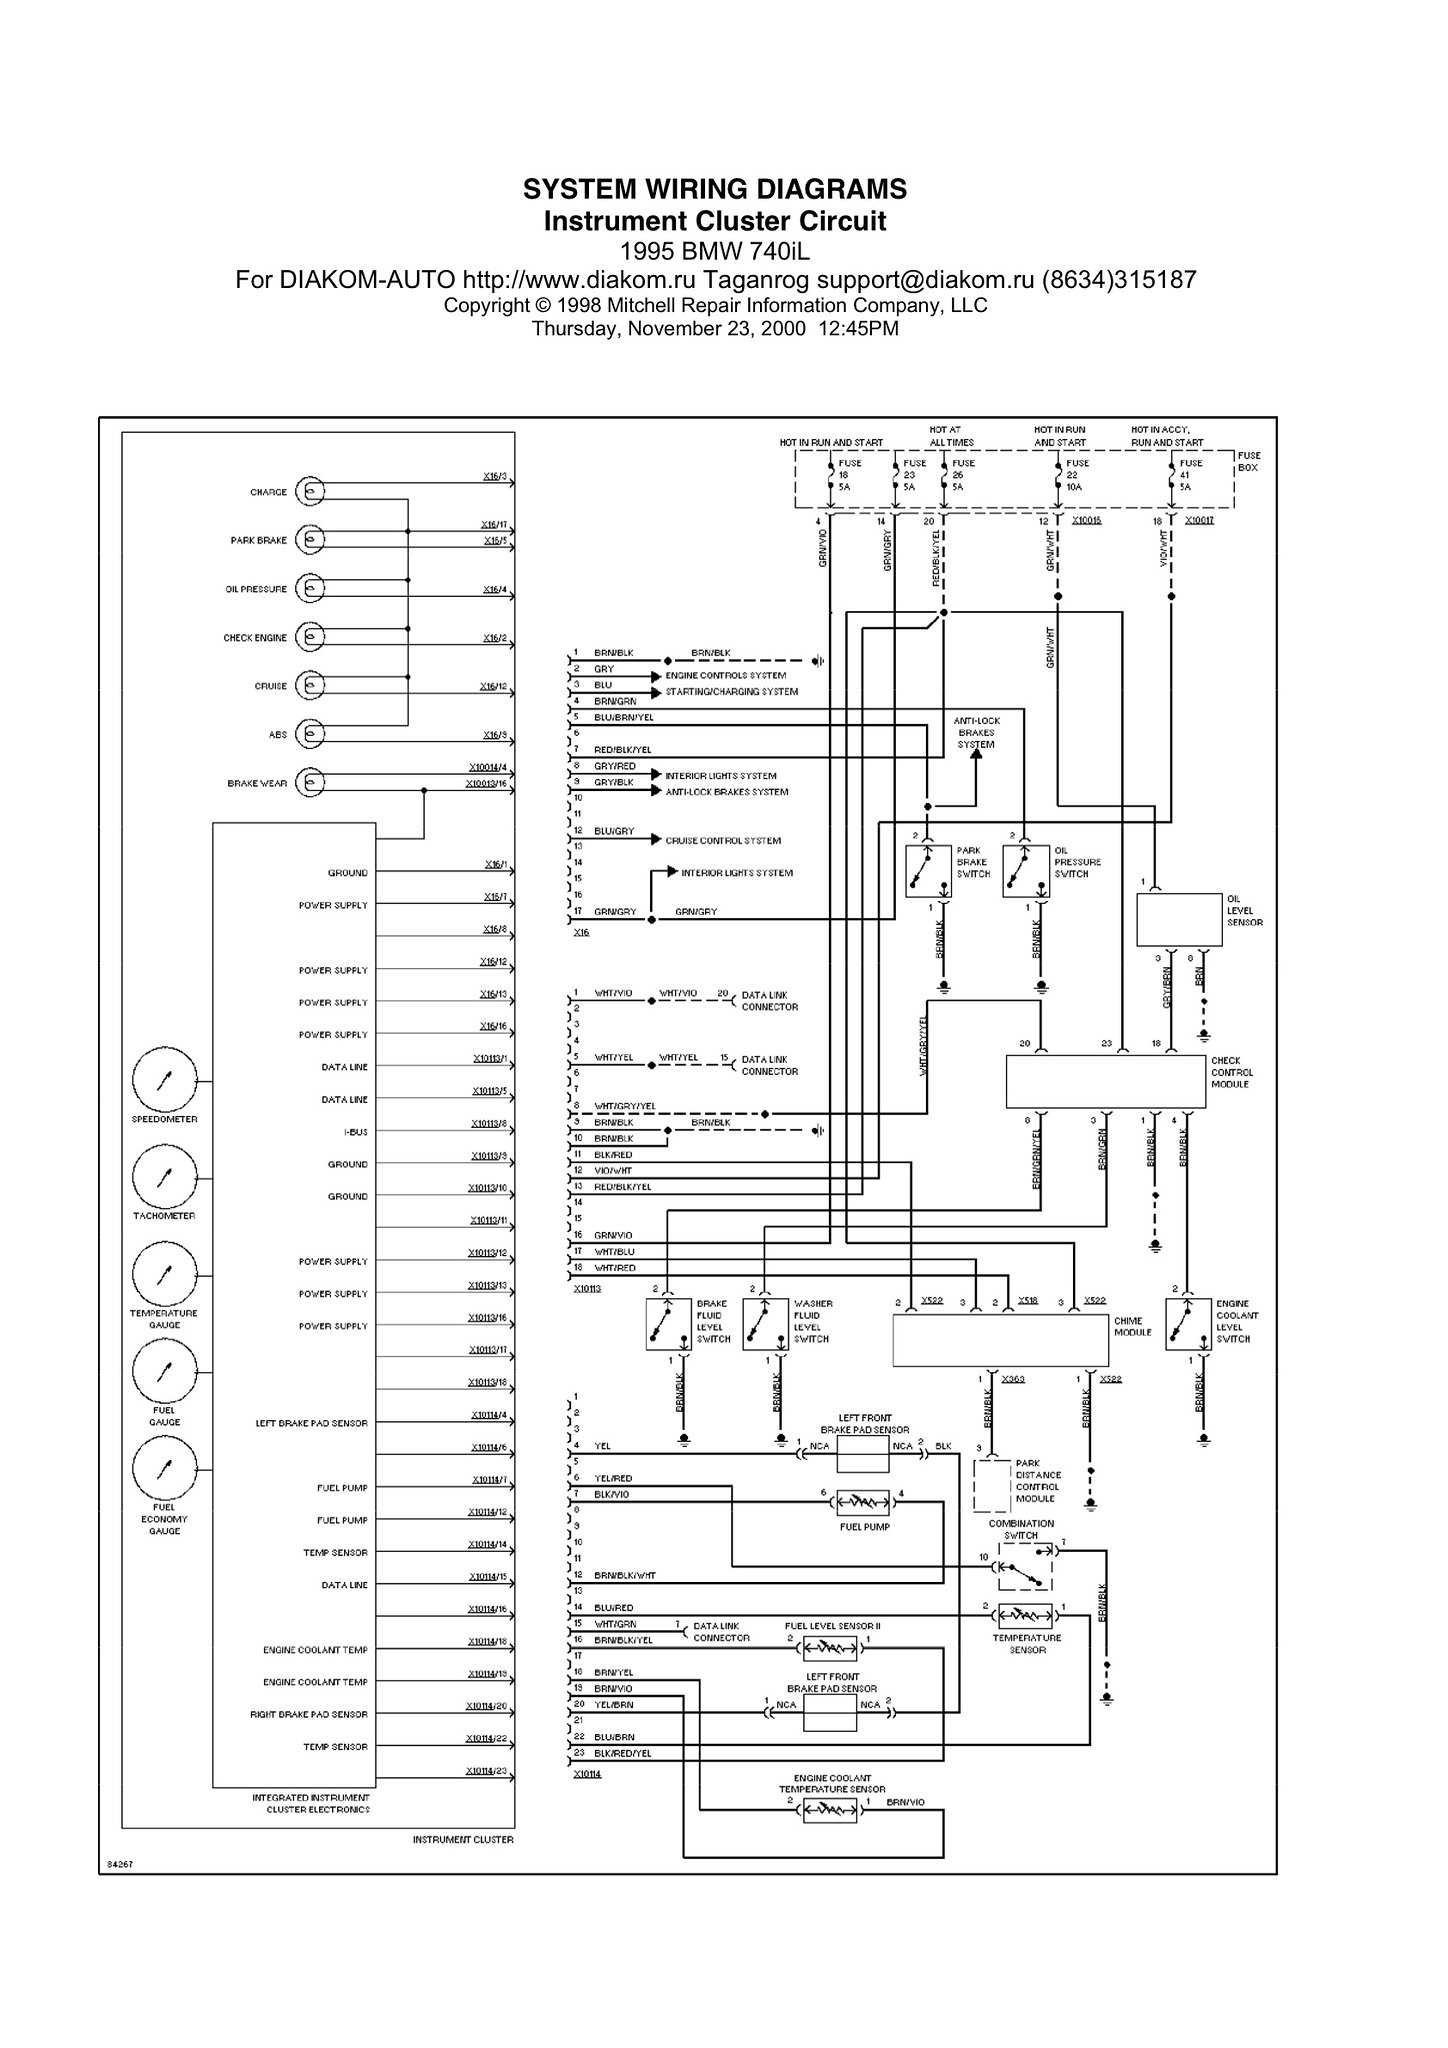 Bmw E39 Pdc Wiring Diagram 26 Images Electrical Diagrams 7703585142 Dbc4ceb414 K Lcm Instruction At